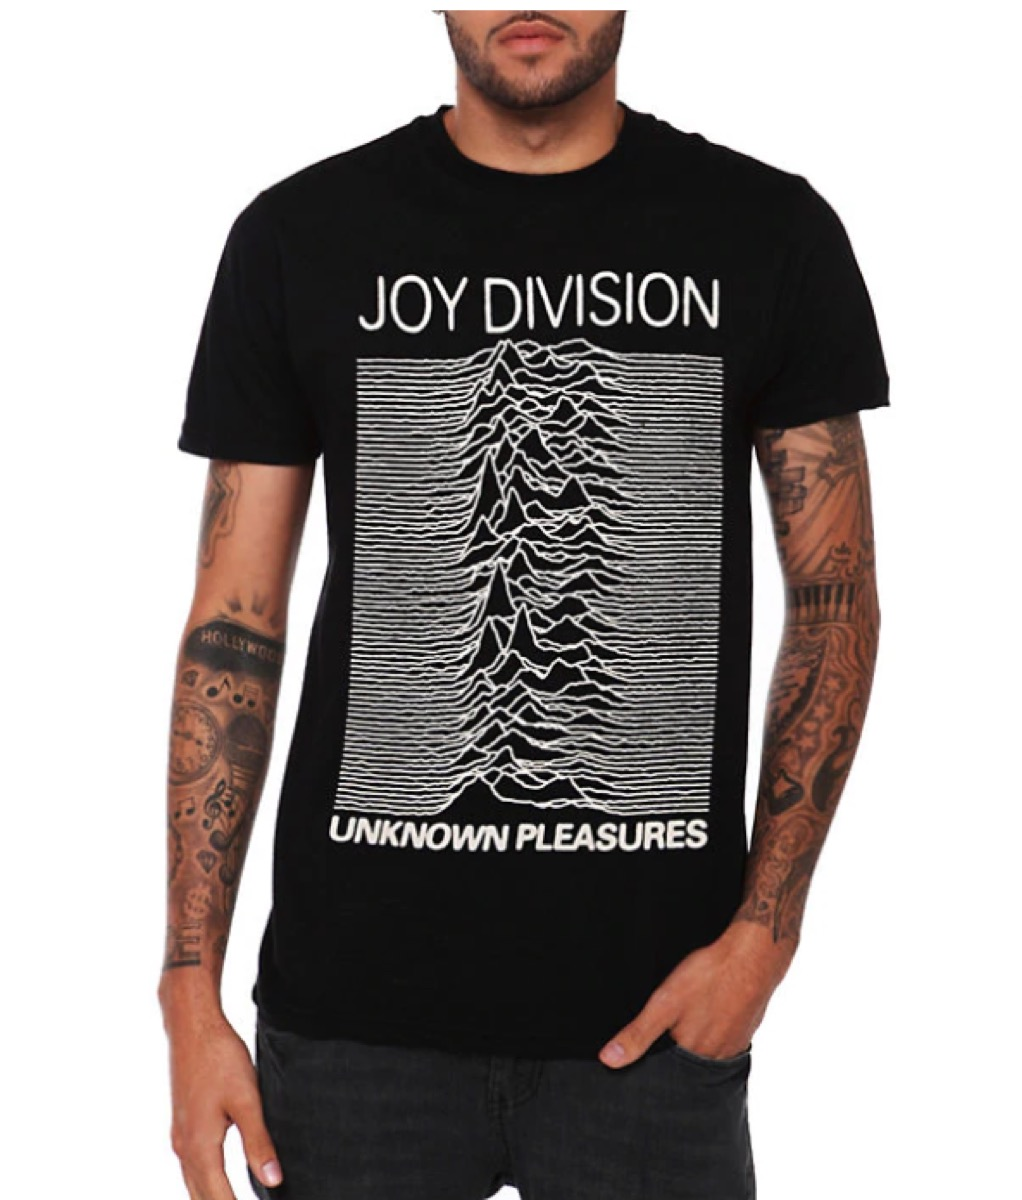 joy division unkown pleasure t-shirts from hot topic, best boyfriend gifts